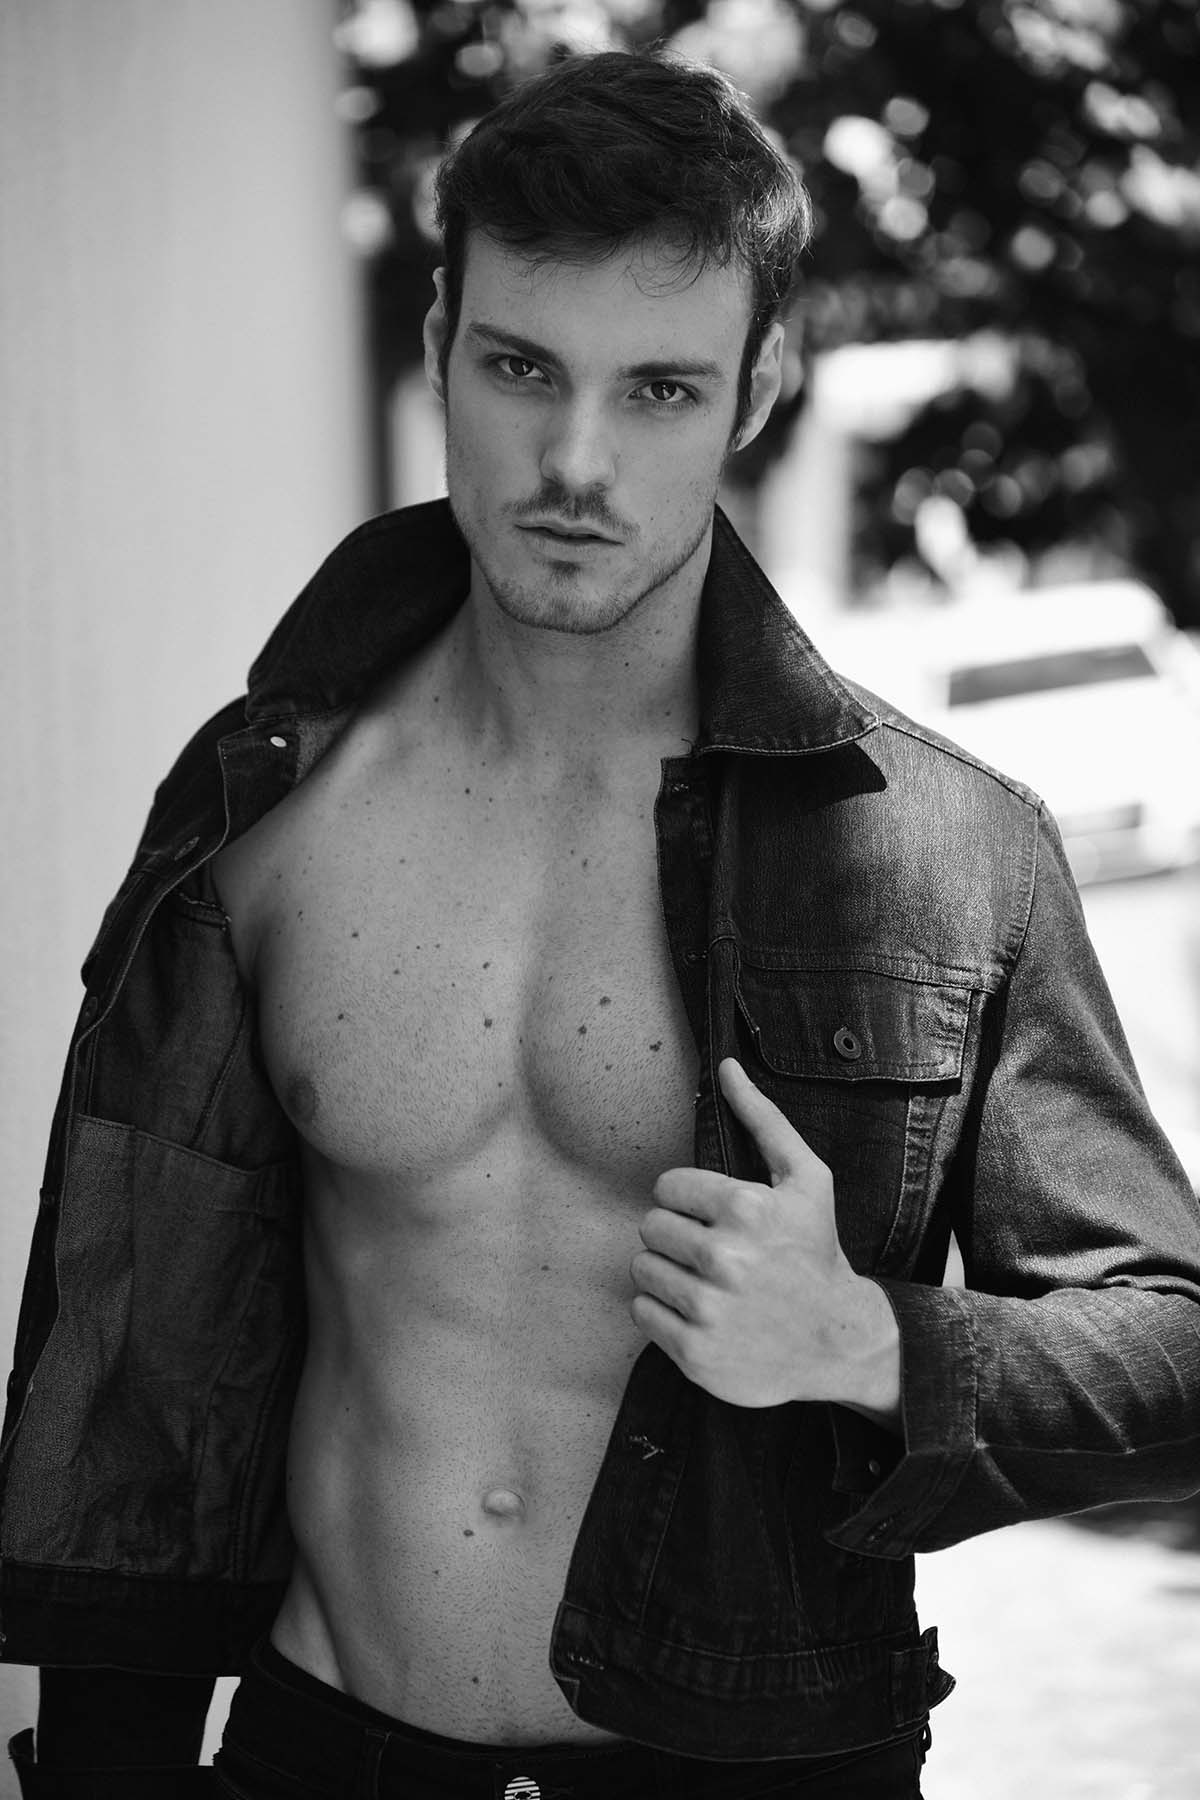 Robero Bofill by Hudson Rennan for Brazilian Male Model